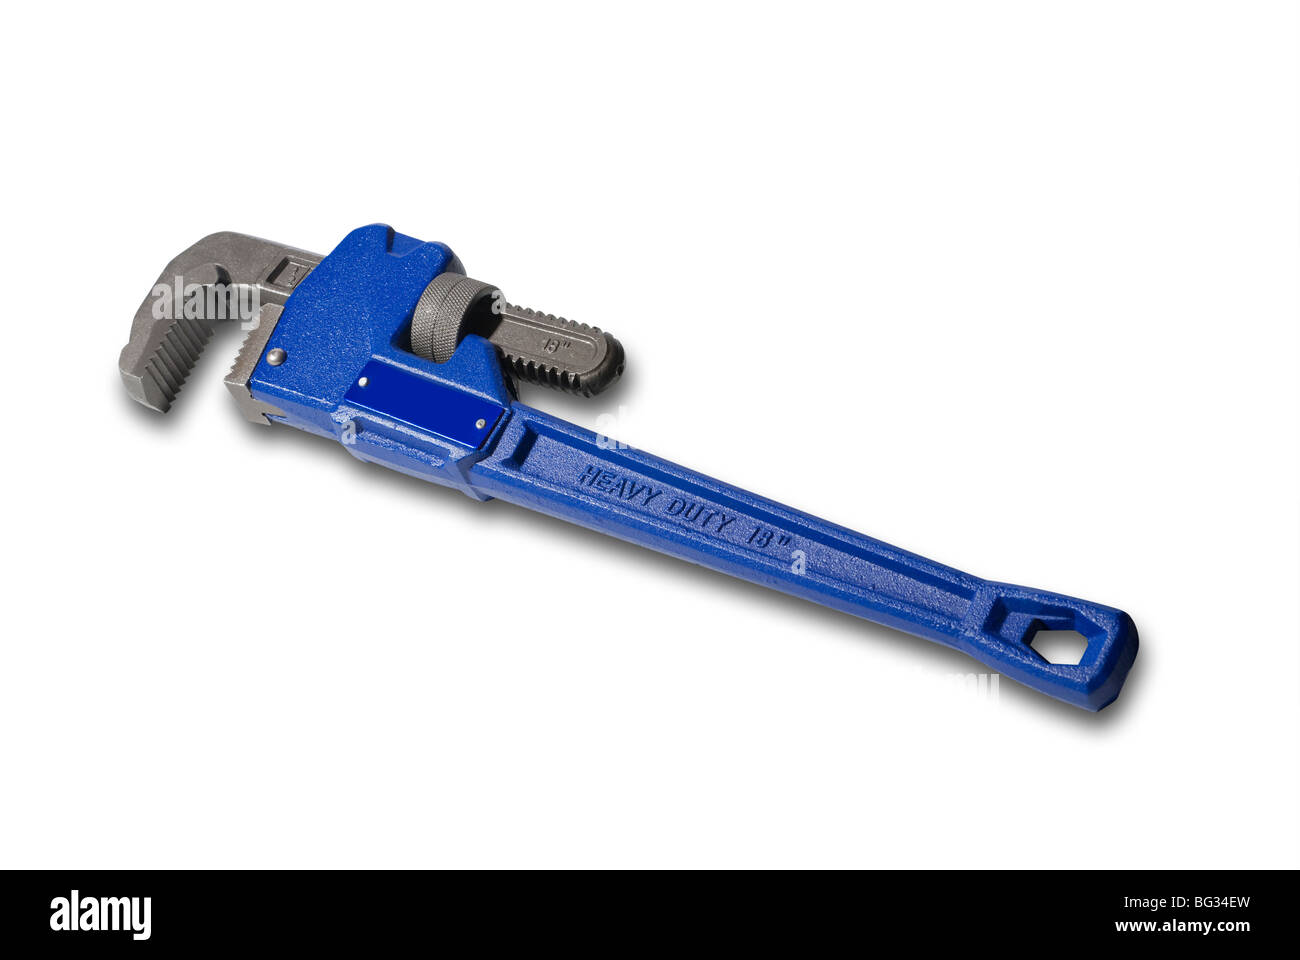 Plumbers Wrench Stock Photos & Plumbers Wrench Stock Images - Alamy